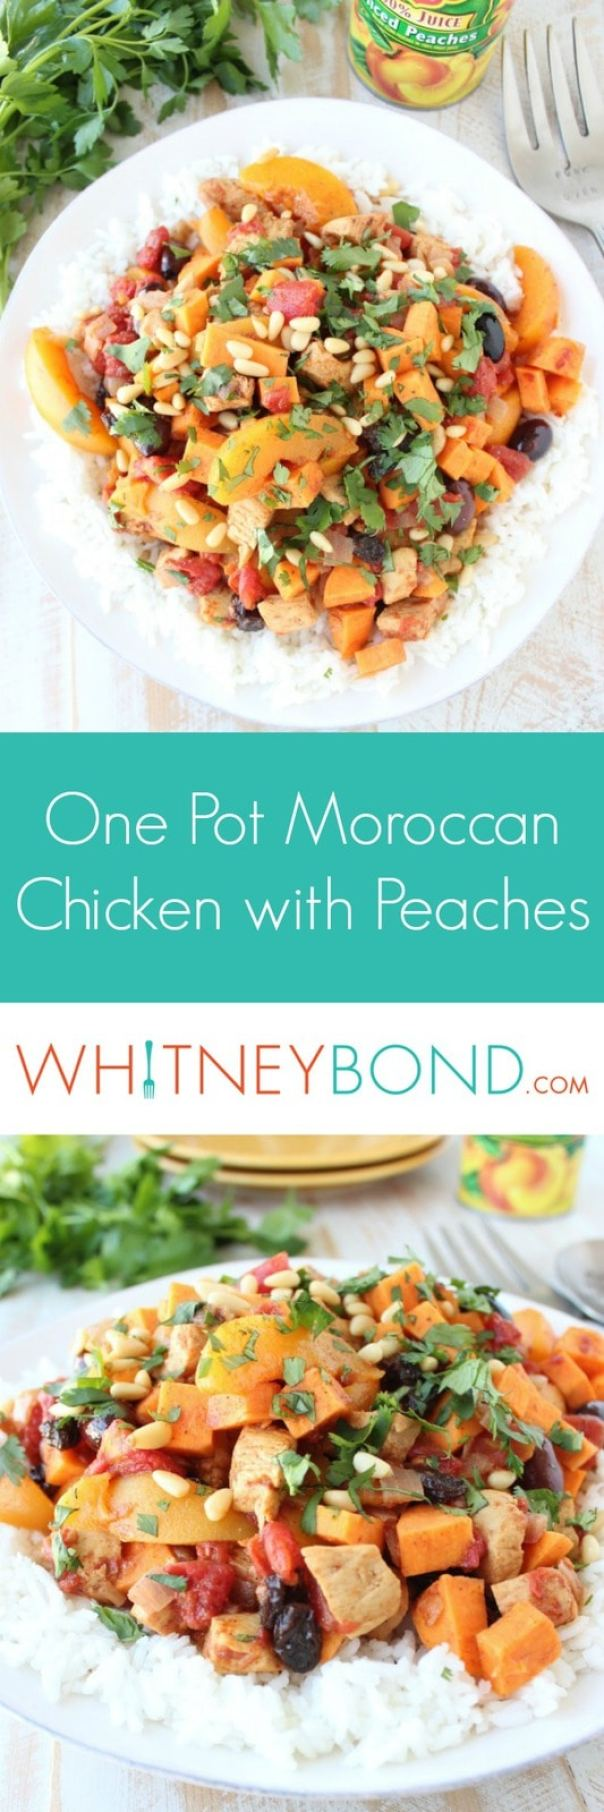 One Pot Moroccan Chicken and Peaches Recipe